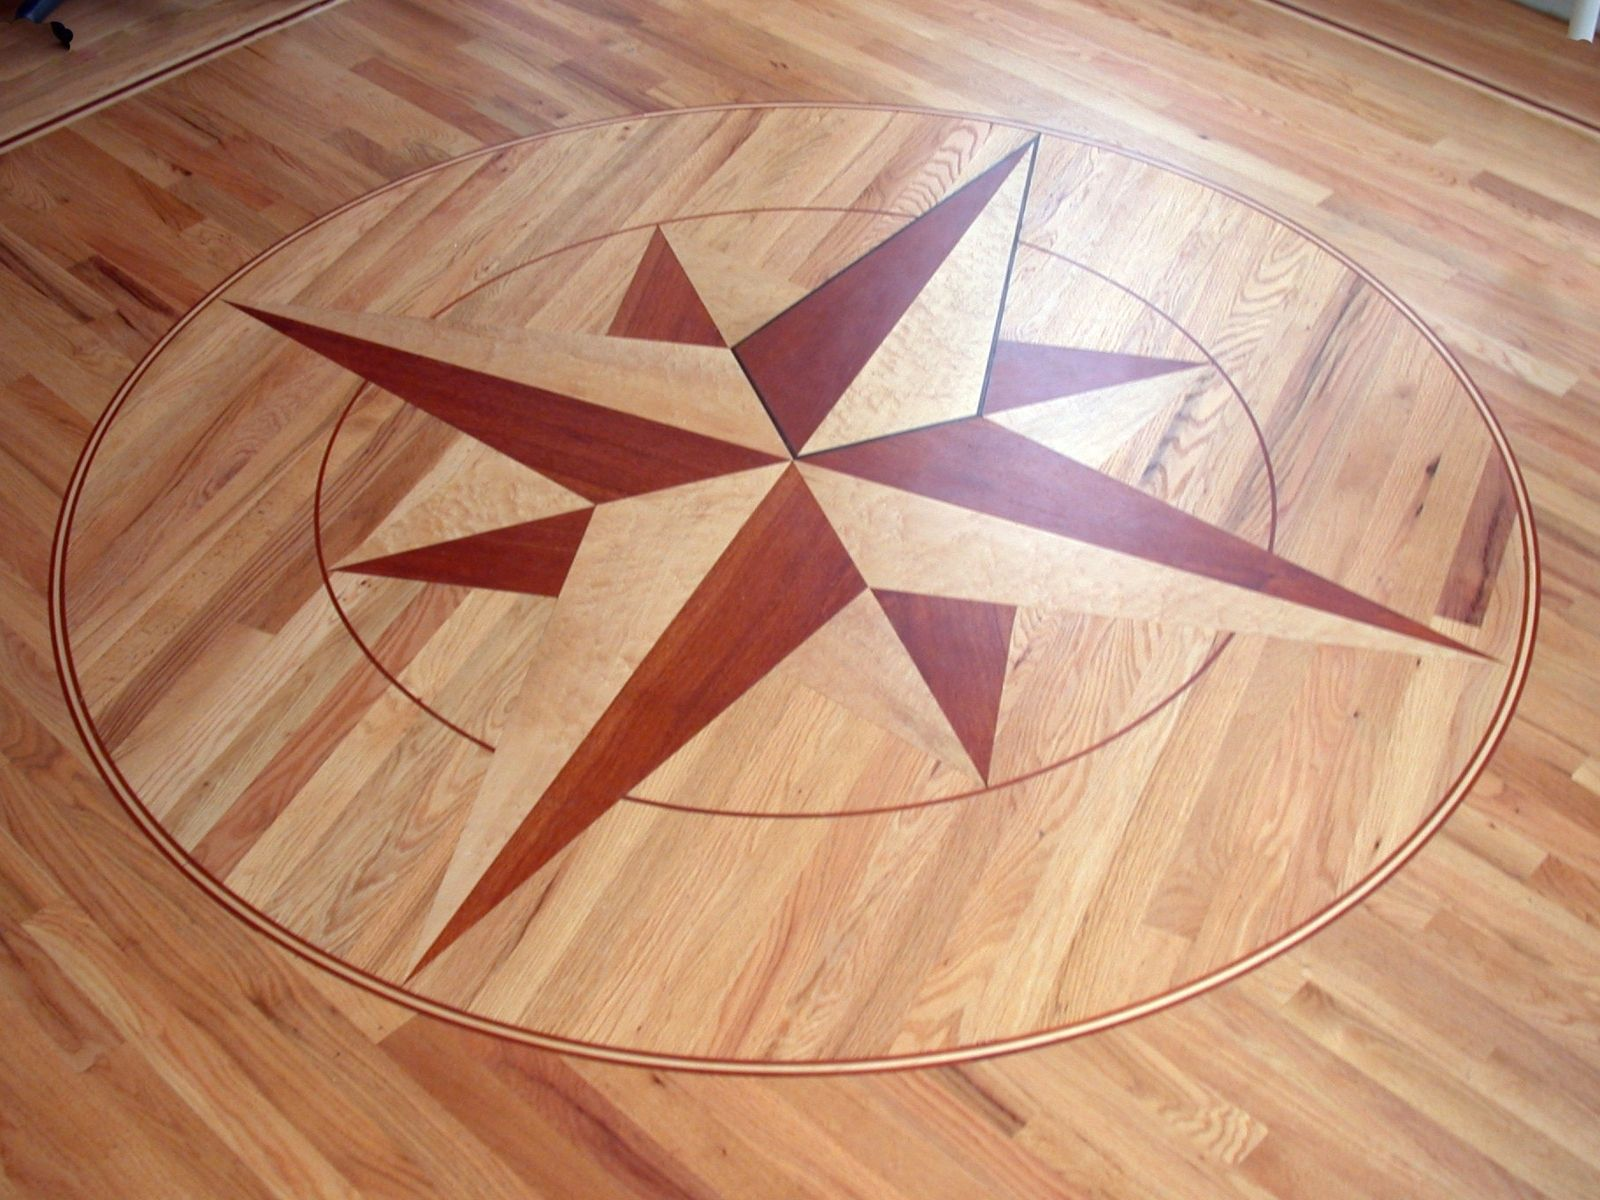 Hand Crafted Compass Rose By Studio Two Design And